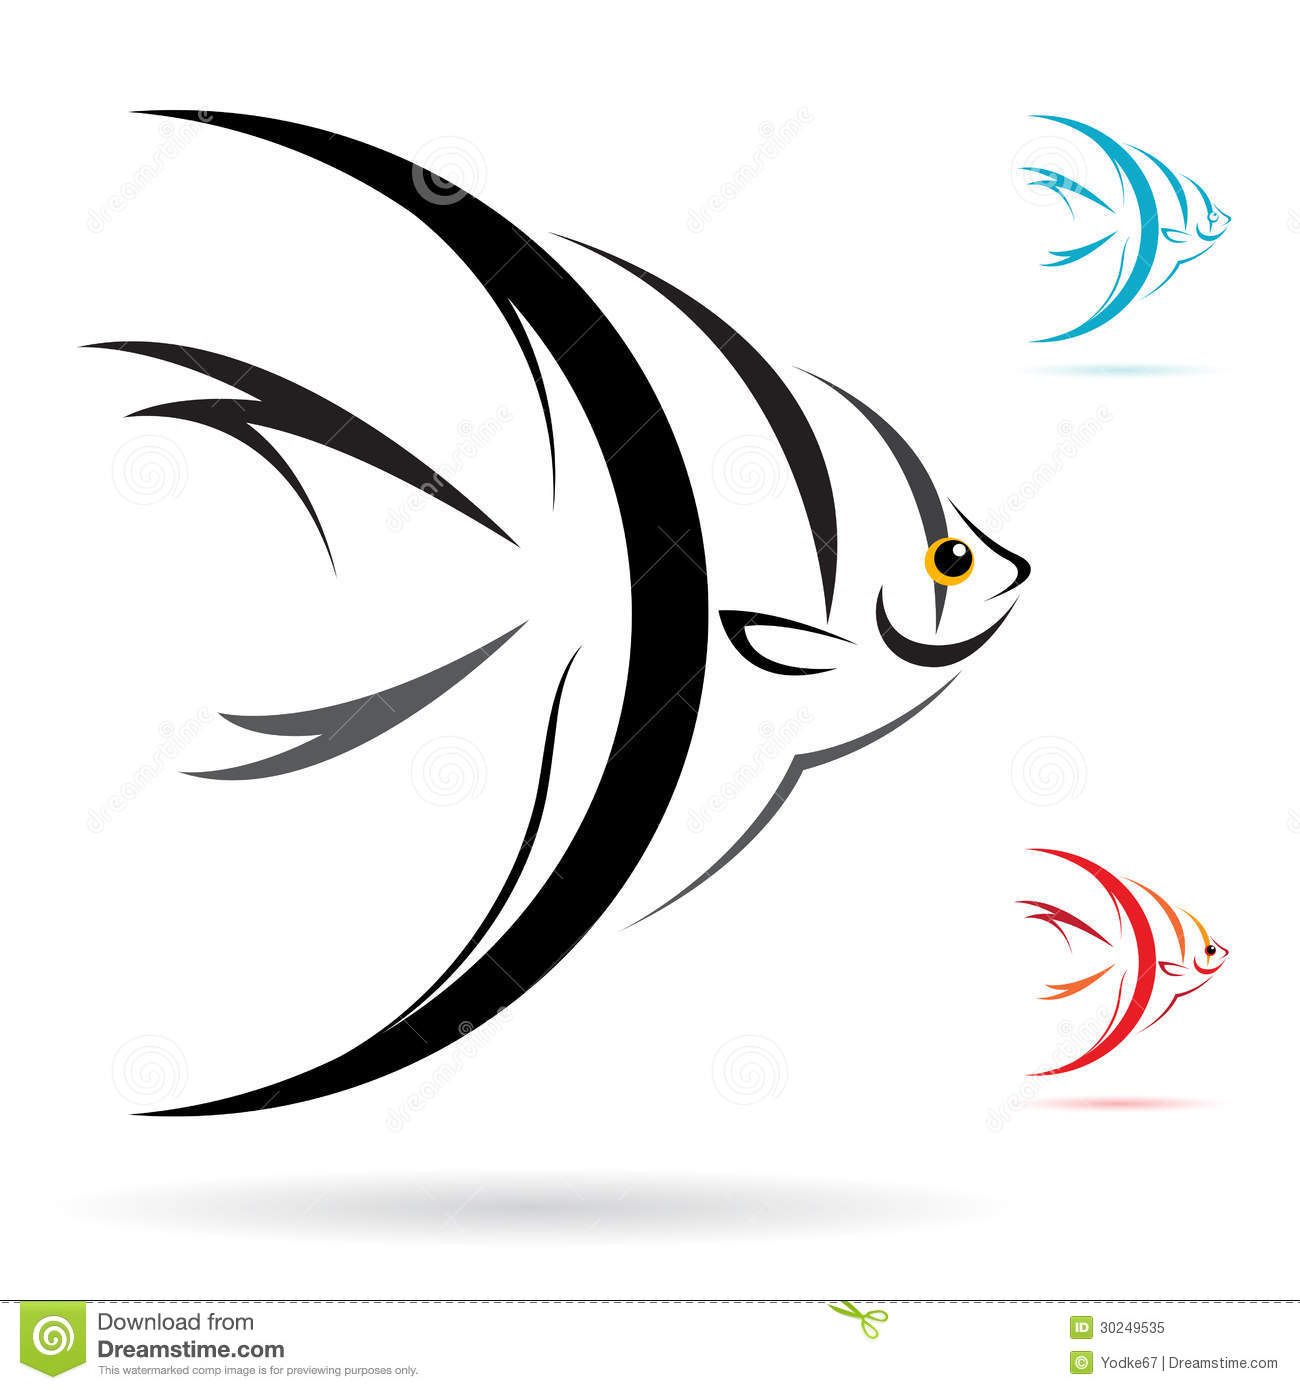 vector image of an angel fish royalty free stock photo colorful angelfish clipart Dolphin Clip Art